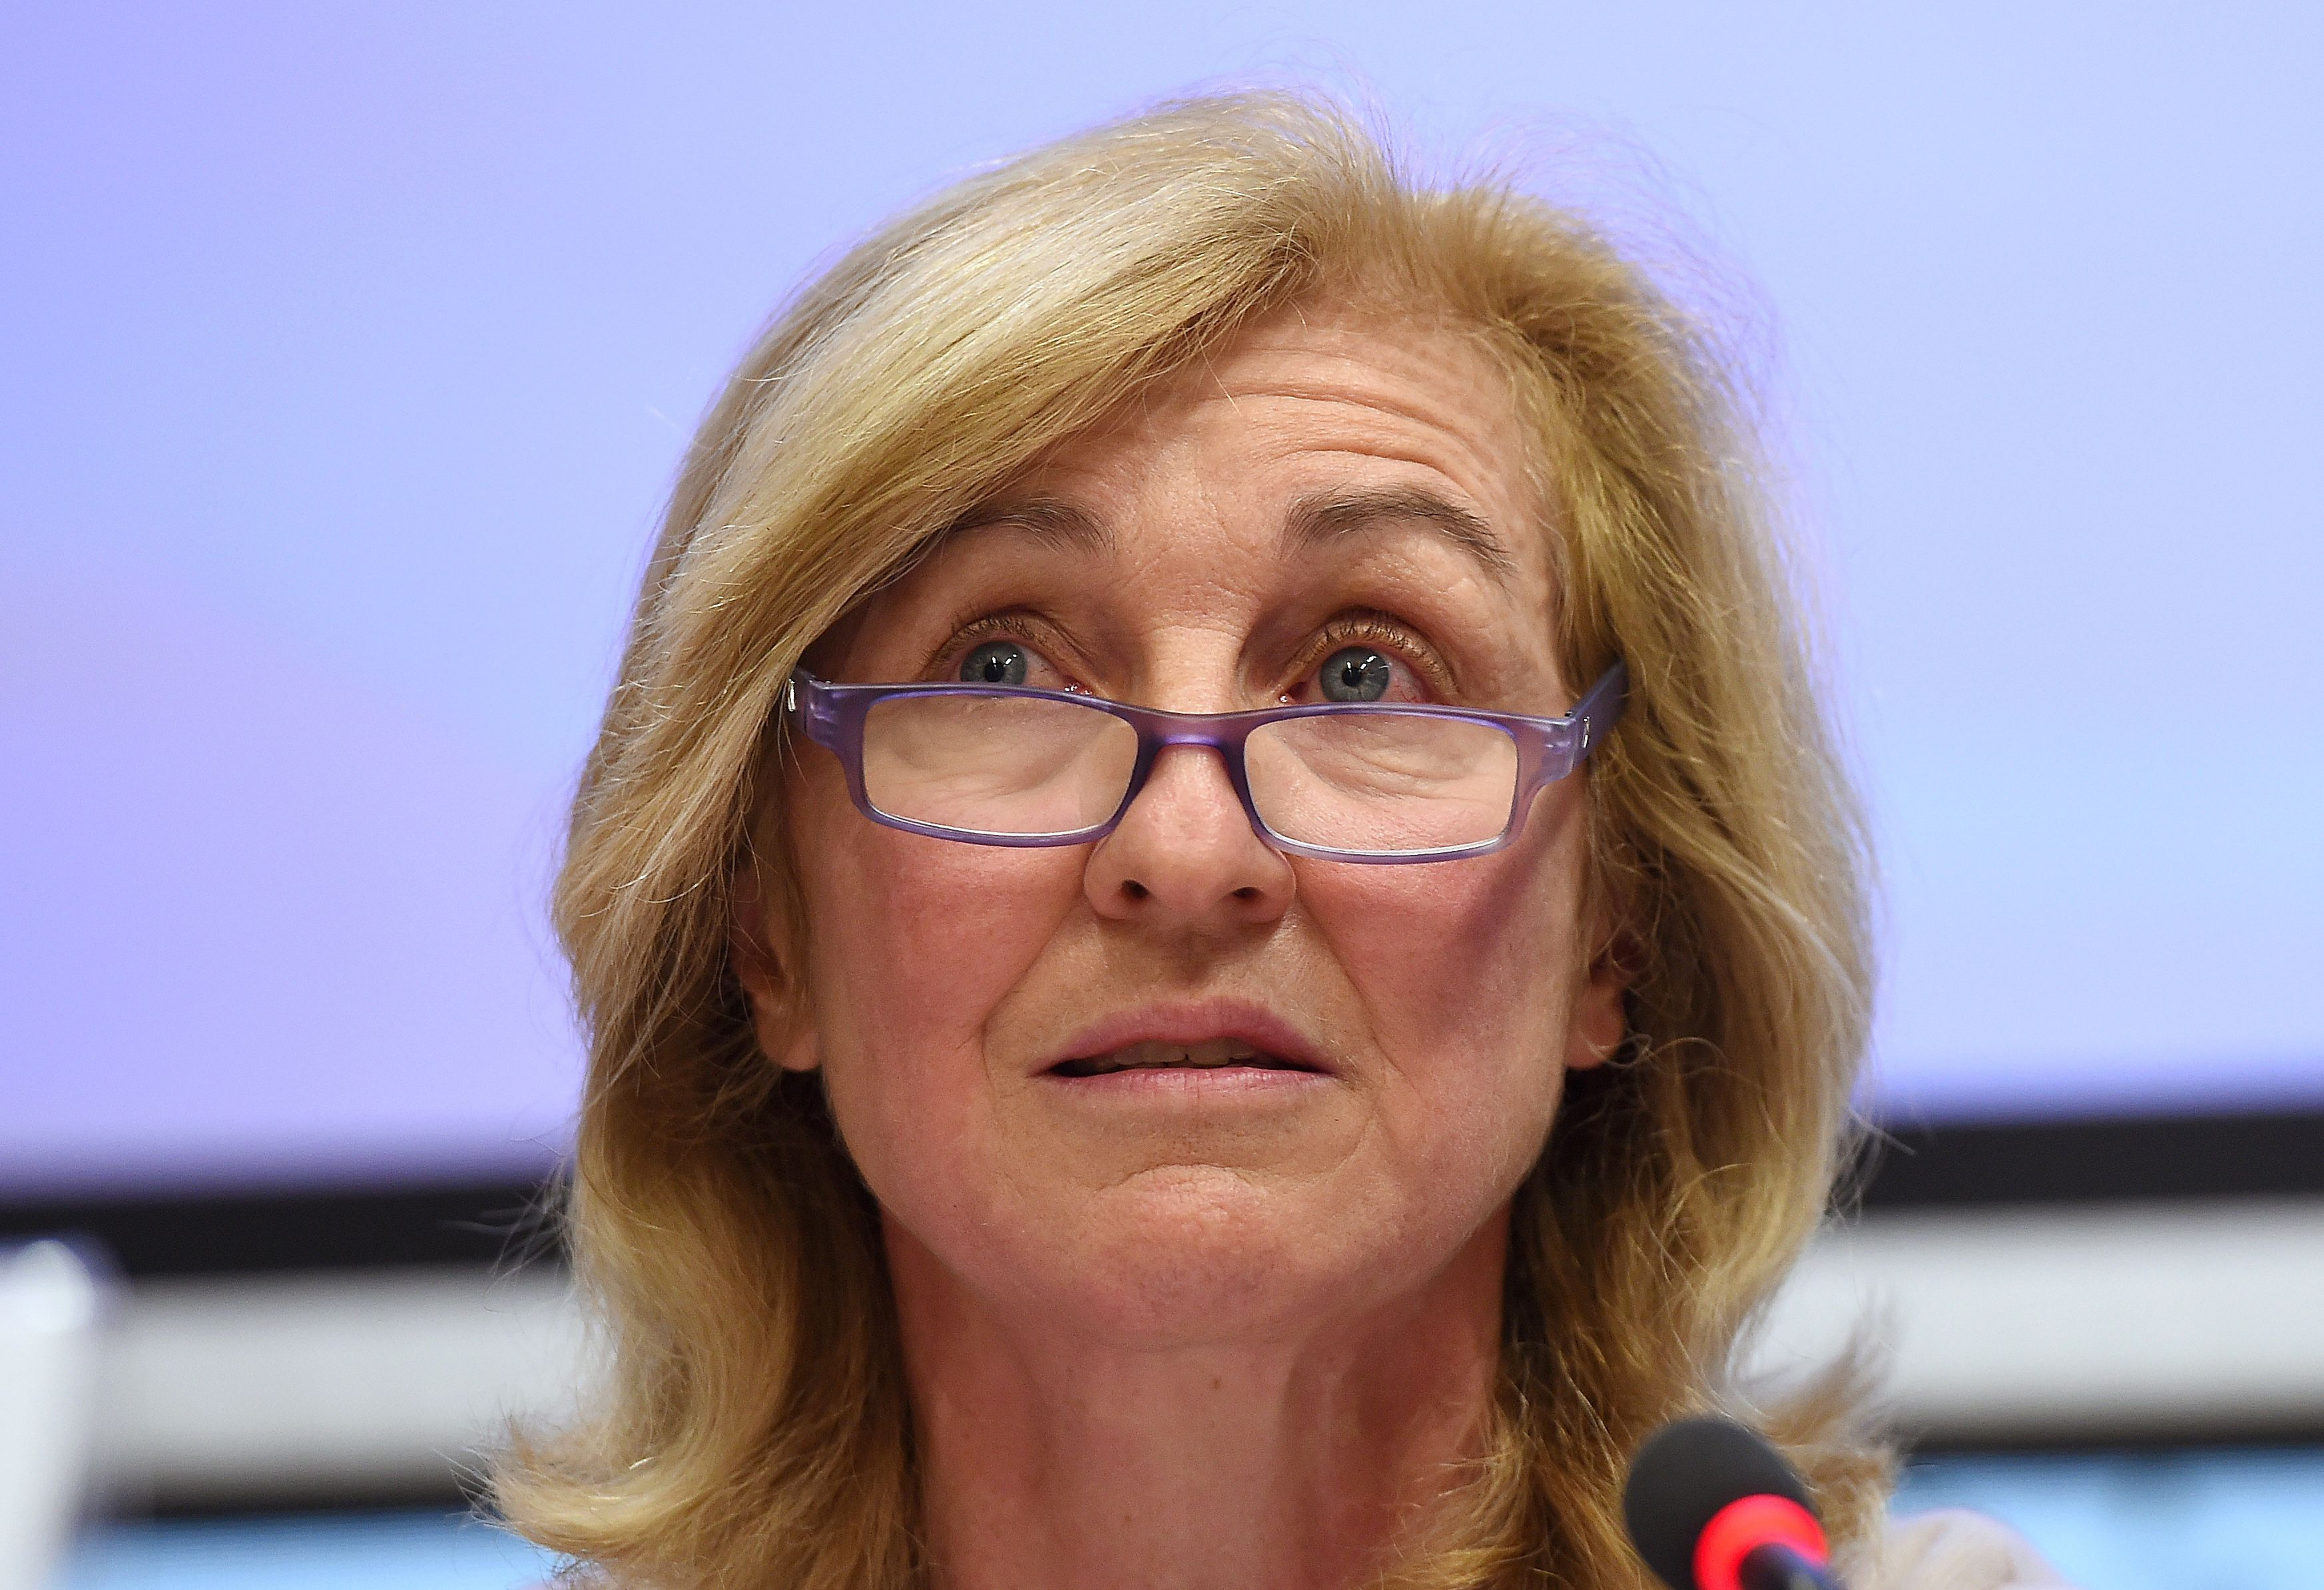 Isabelle Falque-Pierrotin speaks during a press conference on the evolutions of the EU-US privacy shield agreement on February 3, 2016 in Brussels.